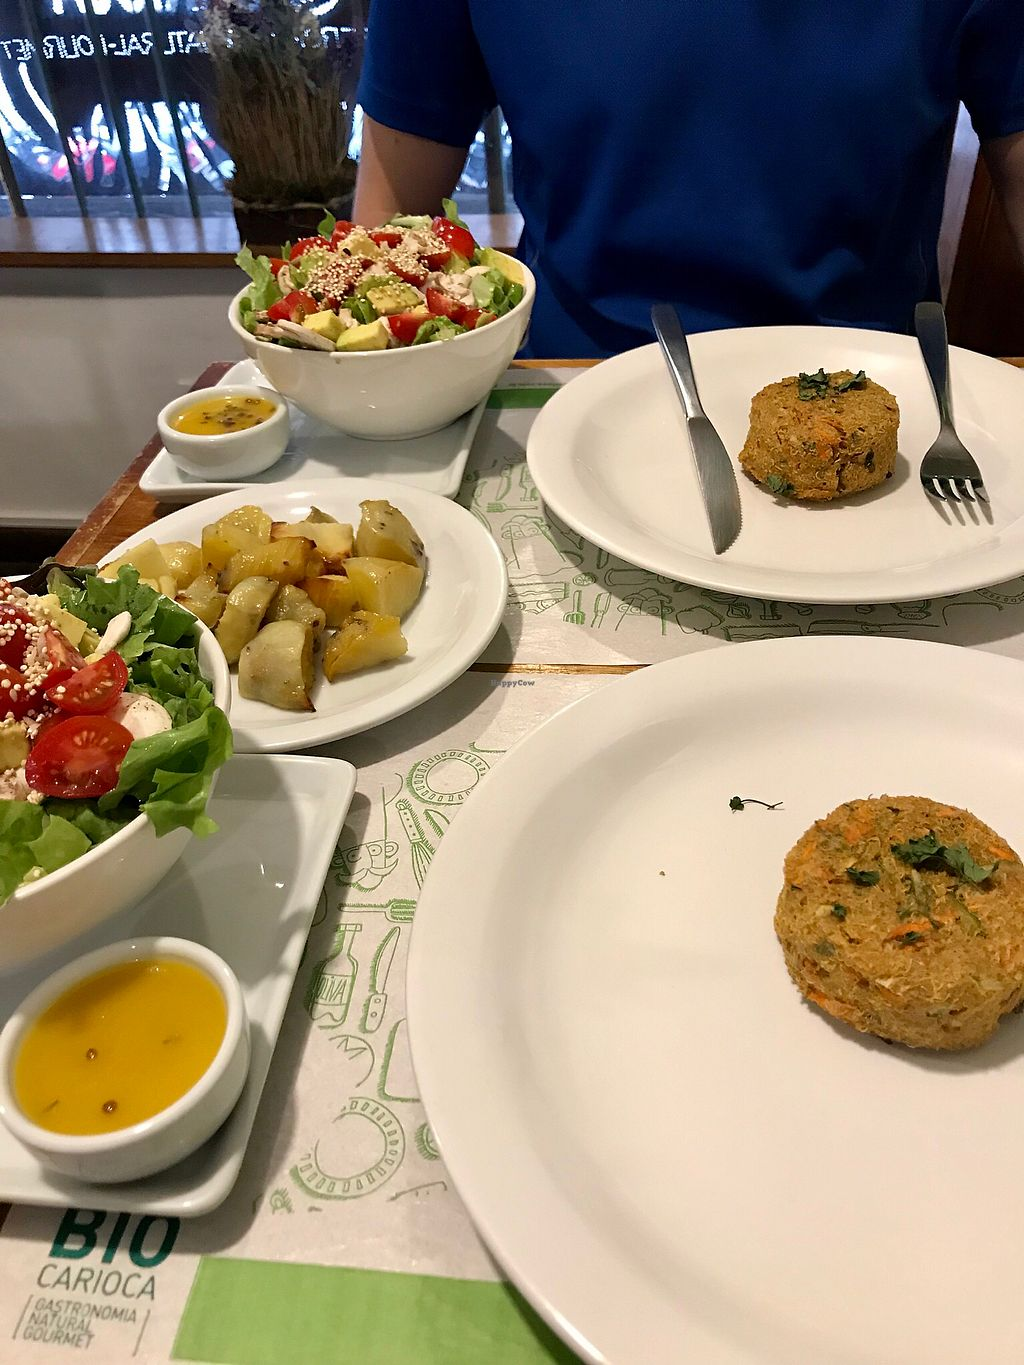 """Photo of Bio Carioca  by <a href=""""/members/profile/dazedkiwi"""">dazedkiwi</a> <br/>Monday's special: Quinoa burger with avocado salad, sweet potatoes and green juice <br/> October 16, 2017  - <a href='/contact/abuse/image/24367/315954'>Report</a>"""